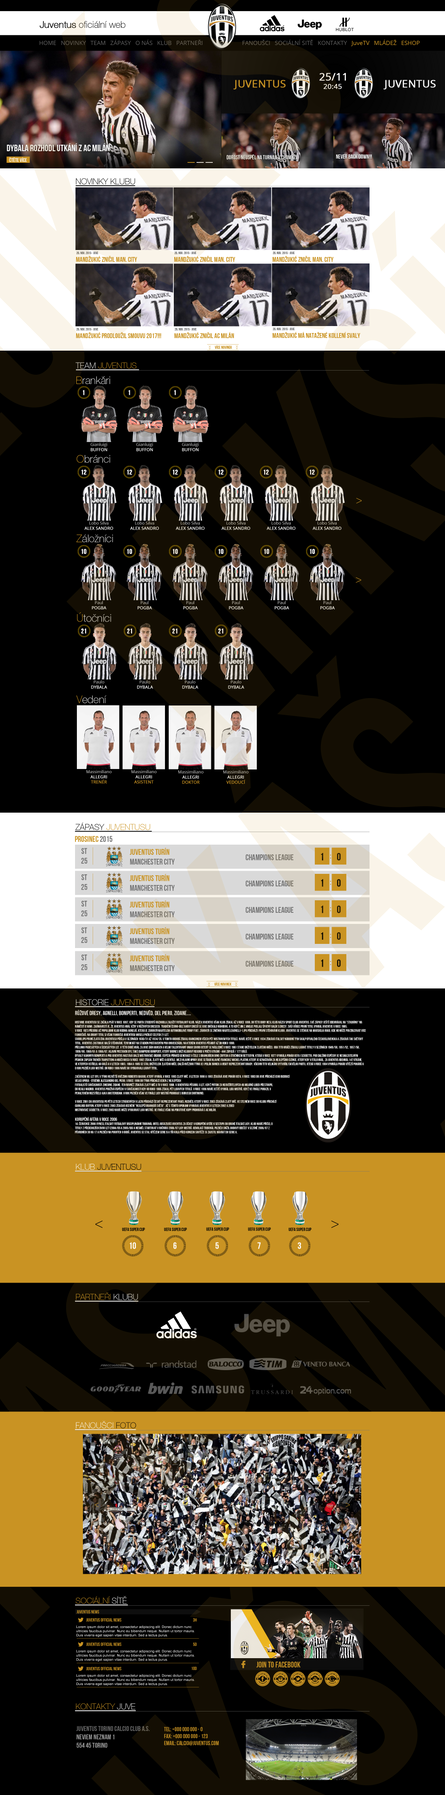 Juventus unofficial by mikQ94